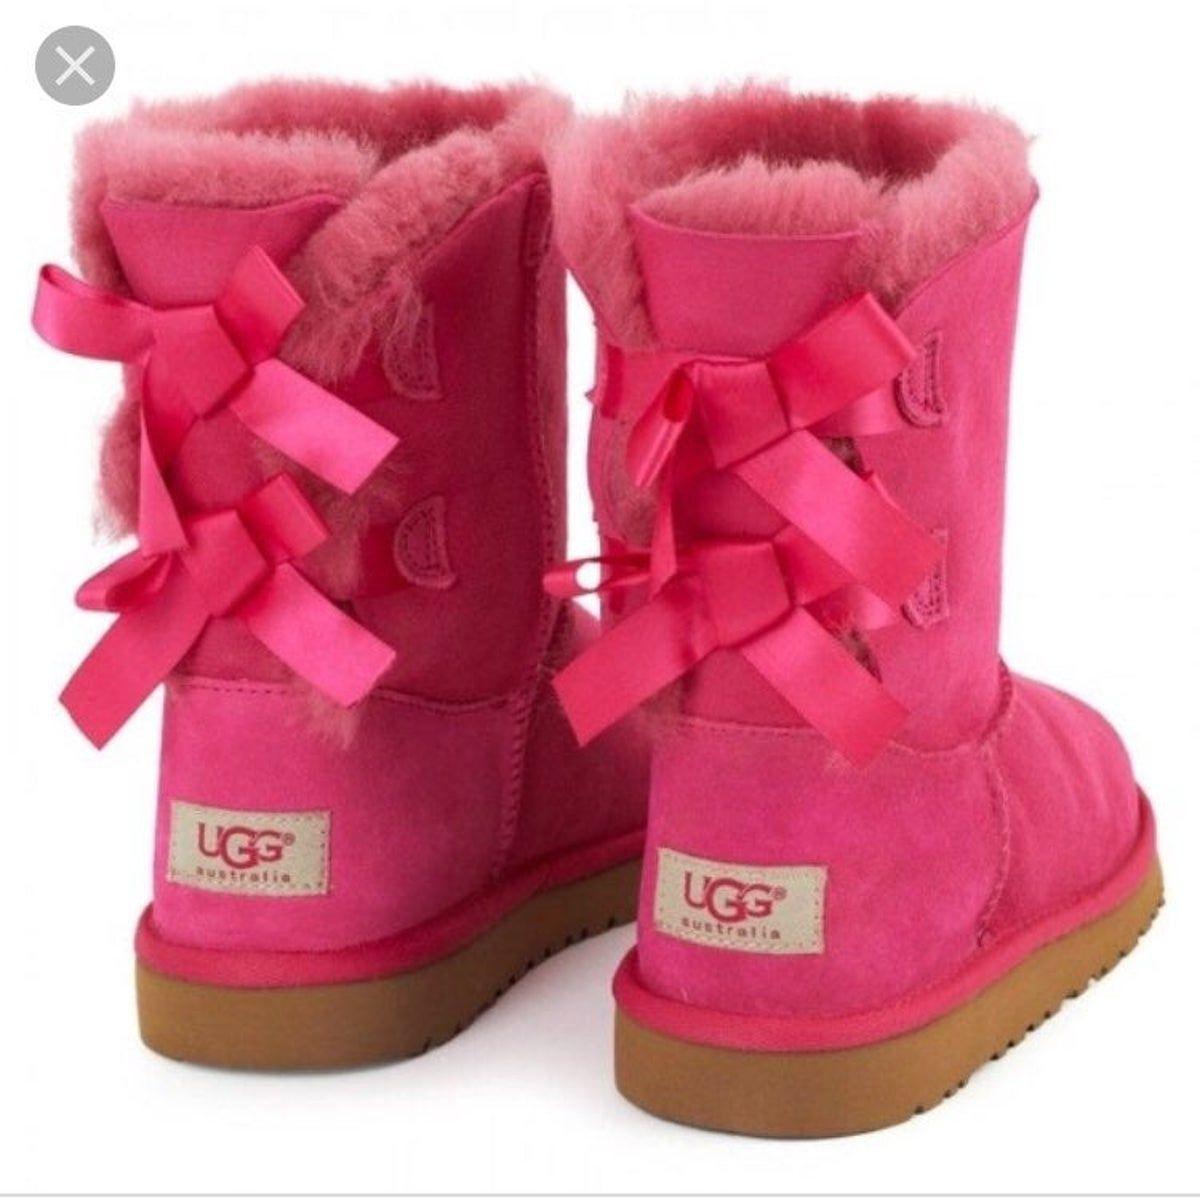 Uggs with bows, Pink uggs, Ugg boots